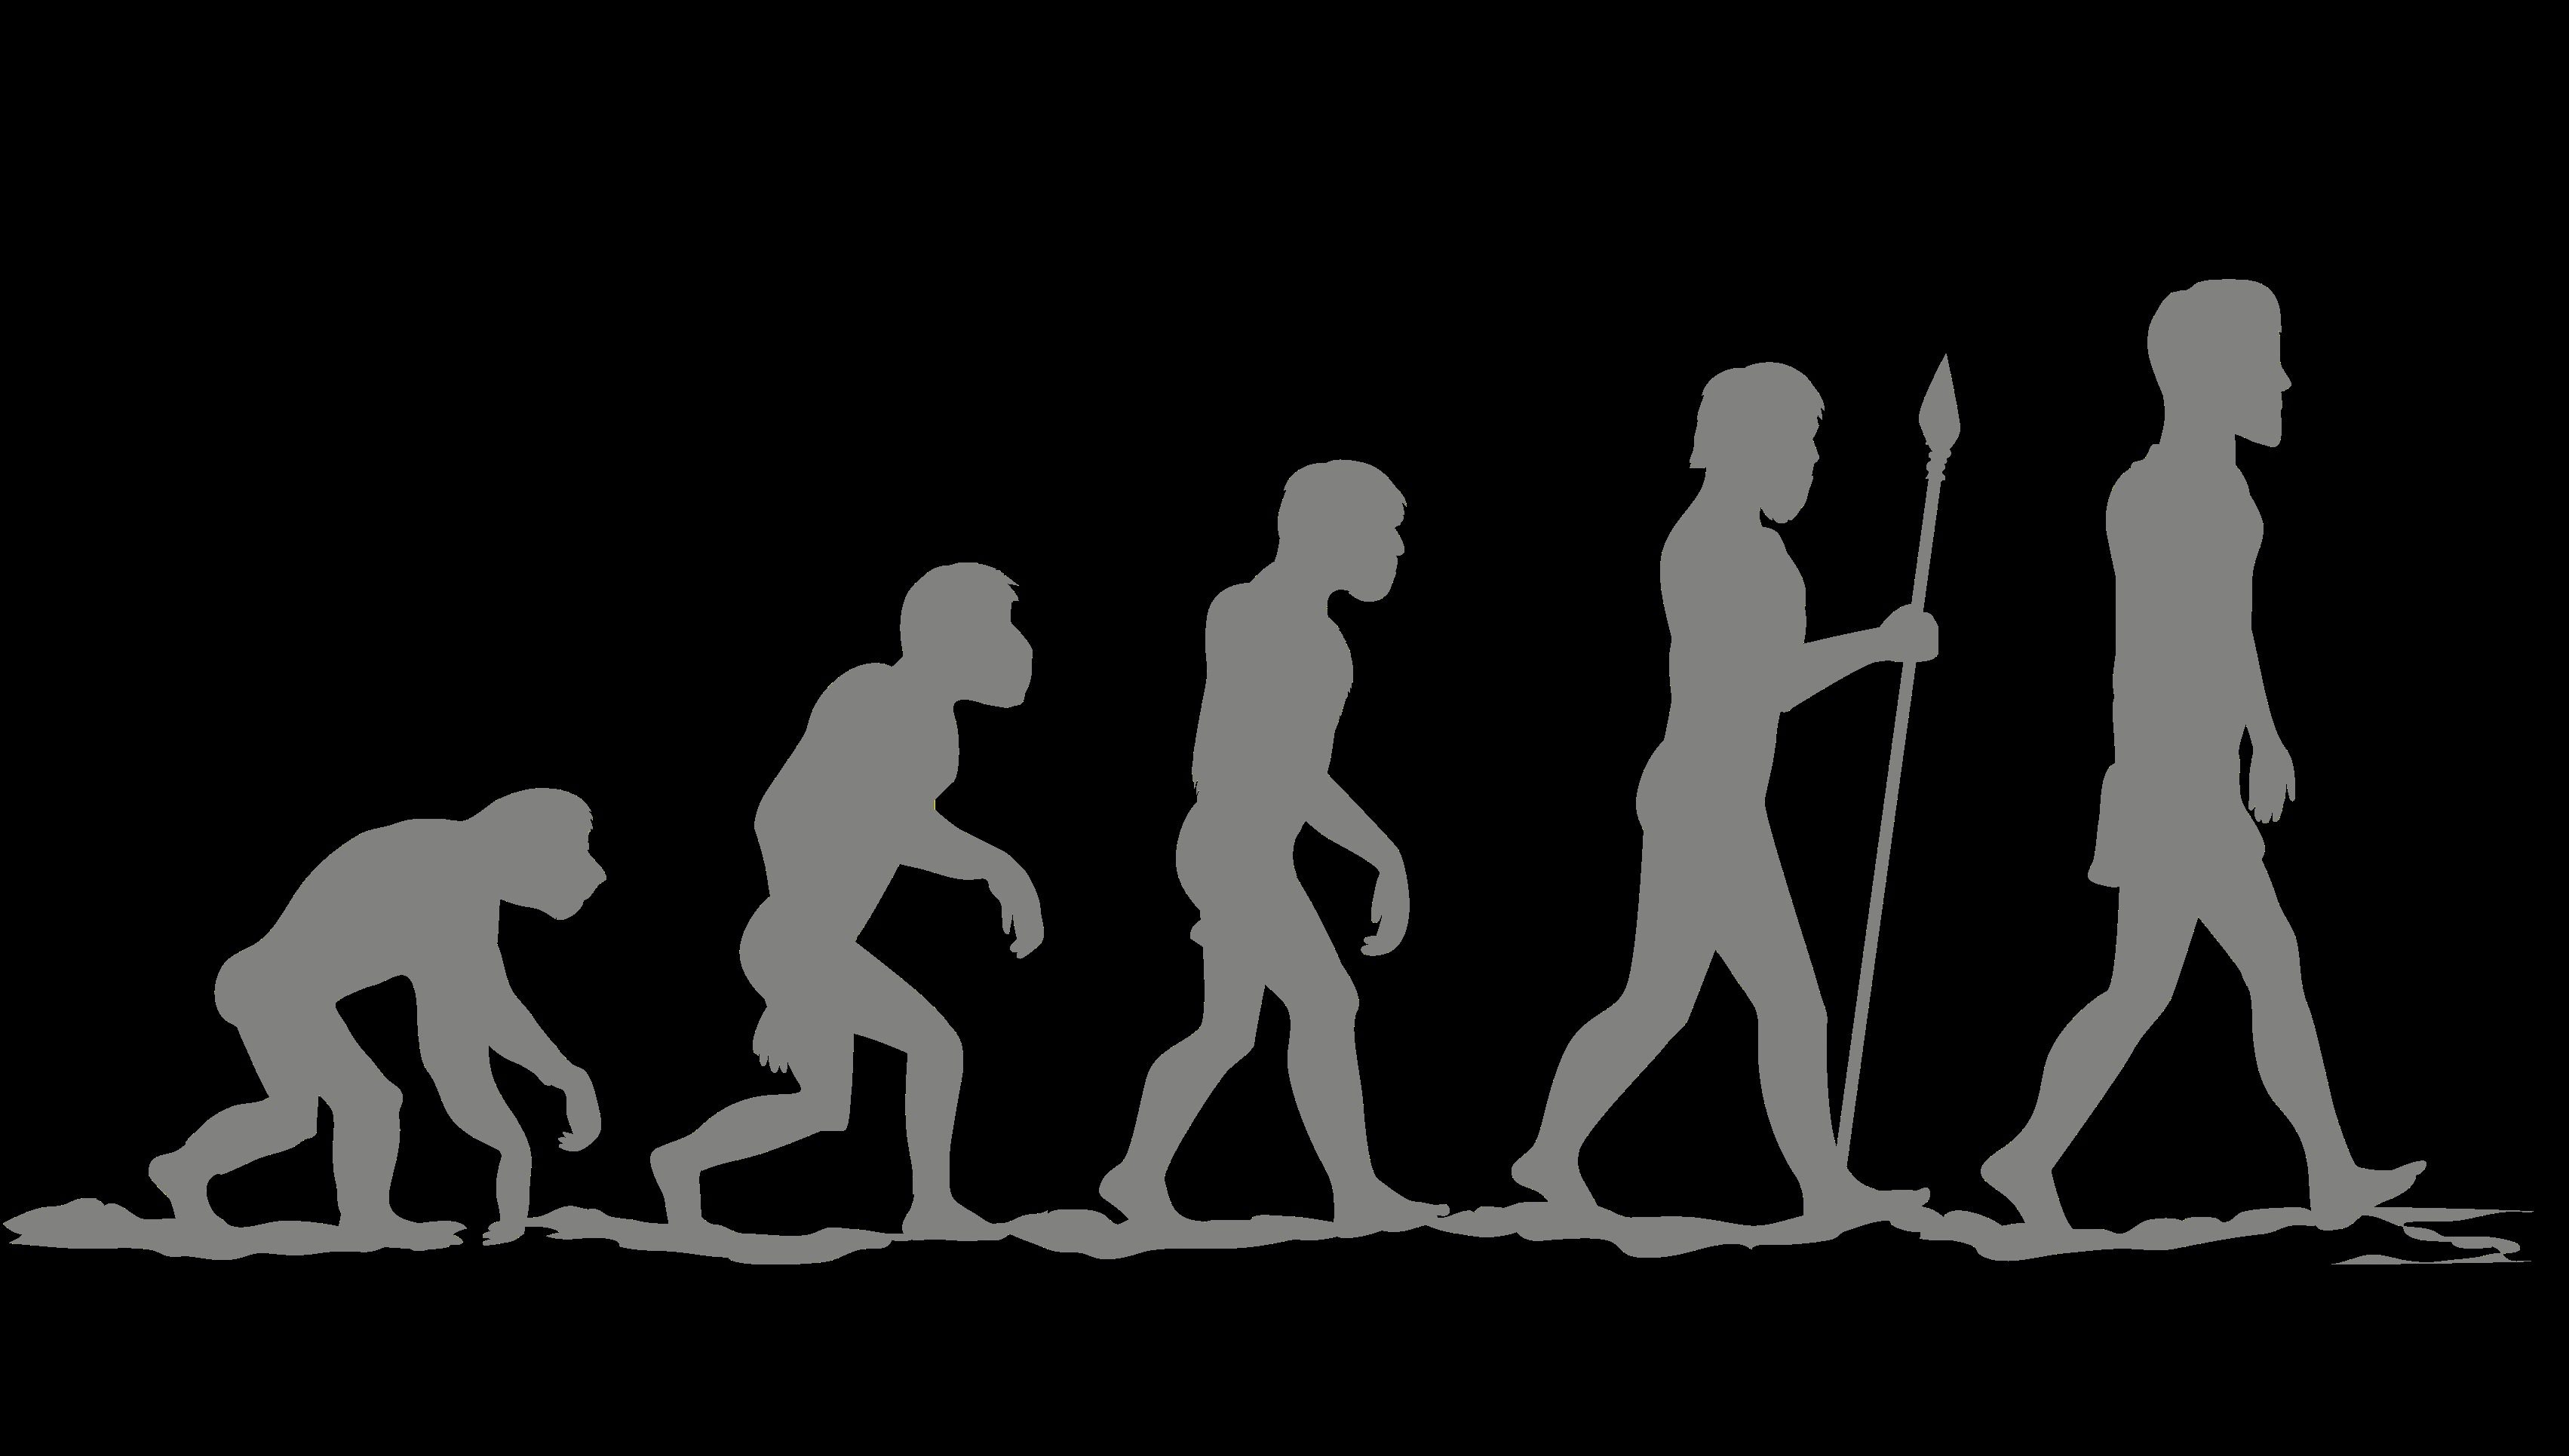 The evolution of human evolution